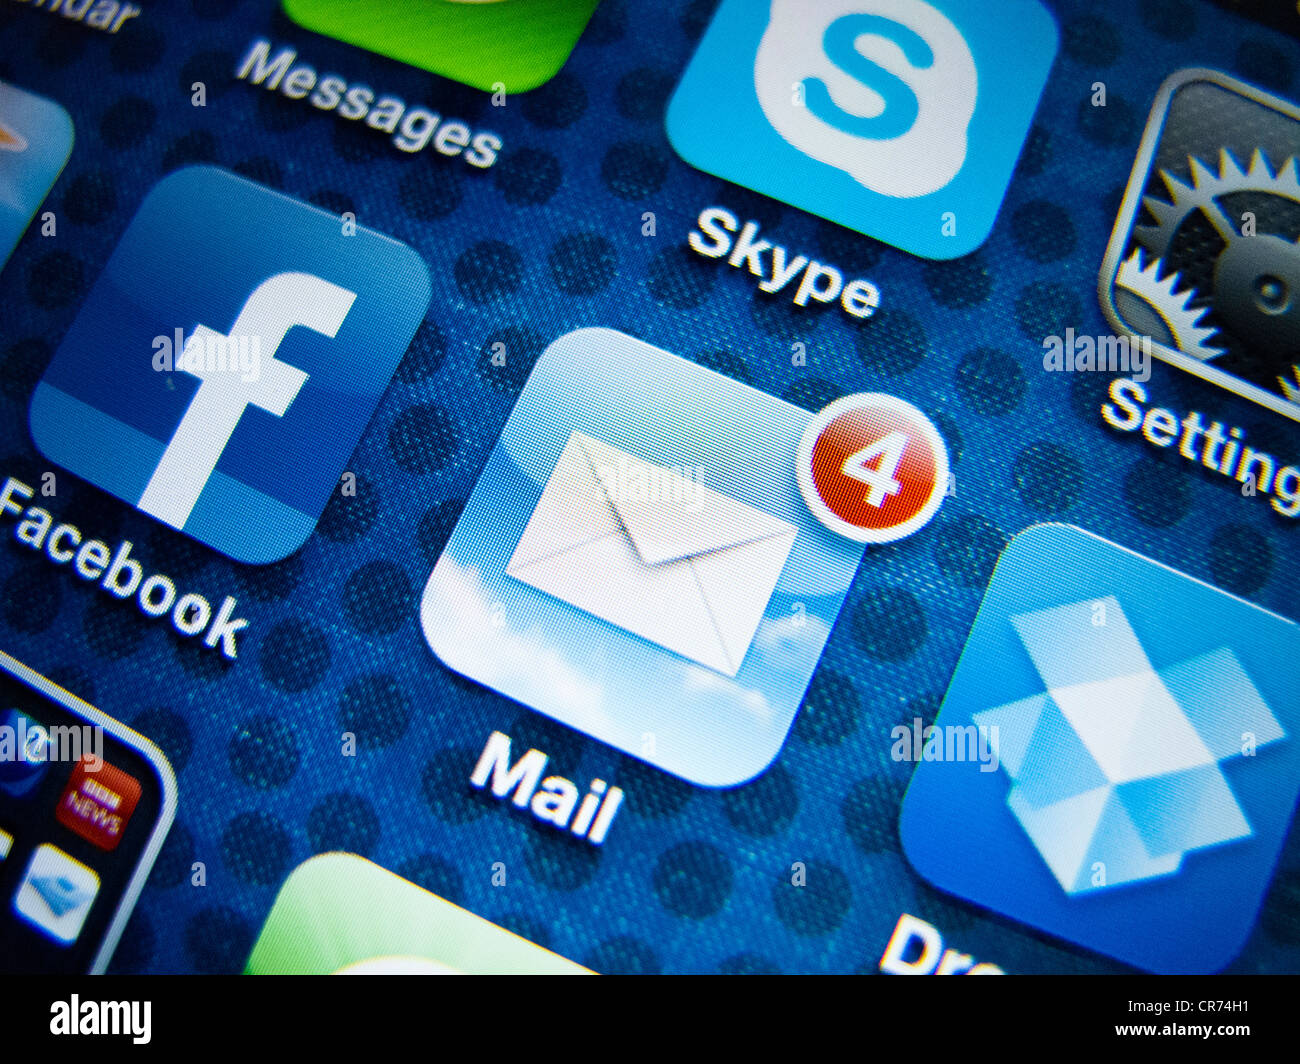 detail of iPhone 4G screen showing Google Mail app - Stock Image